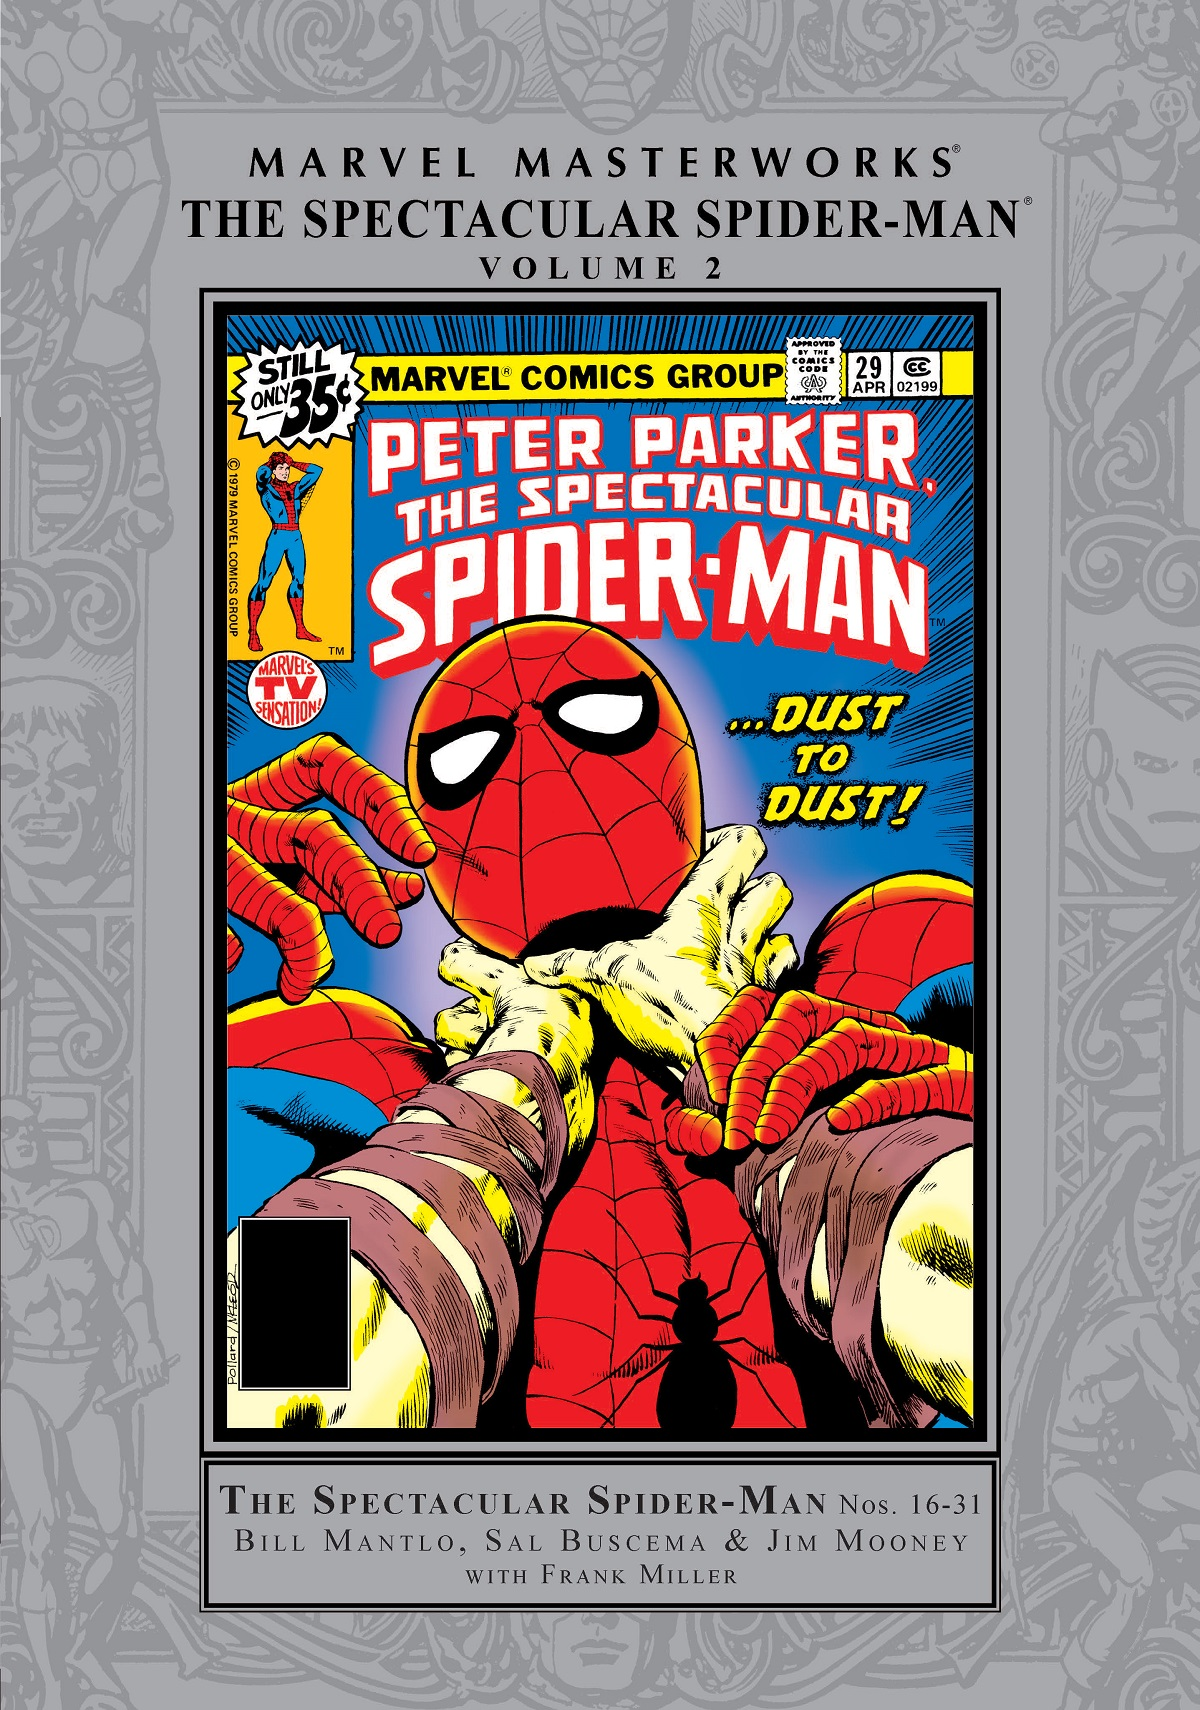 Marvel Masterworks: The Spectacular Spider-Man Vol. 2 (Hardcover)